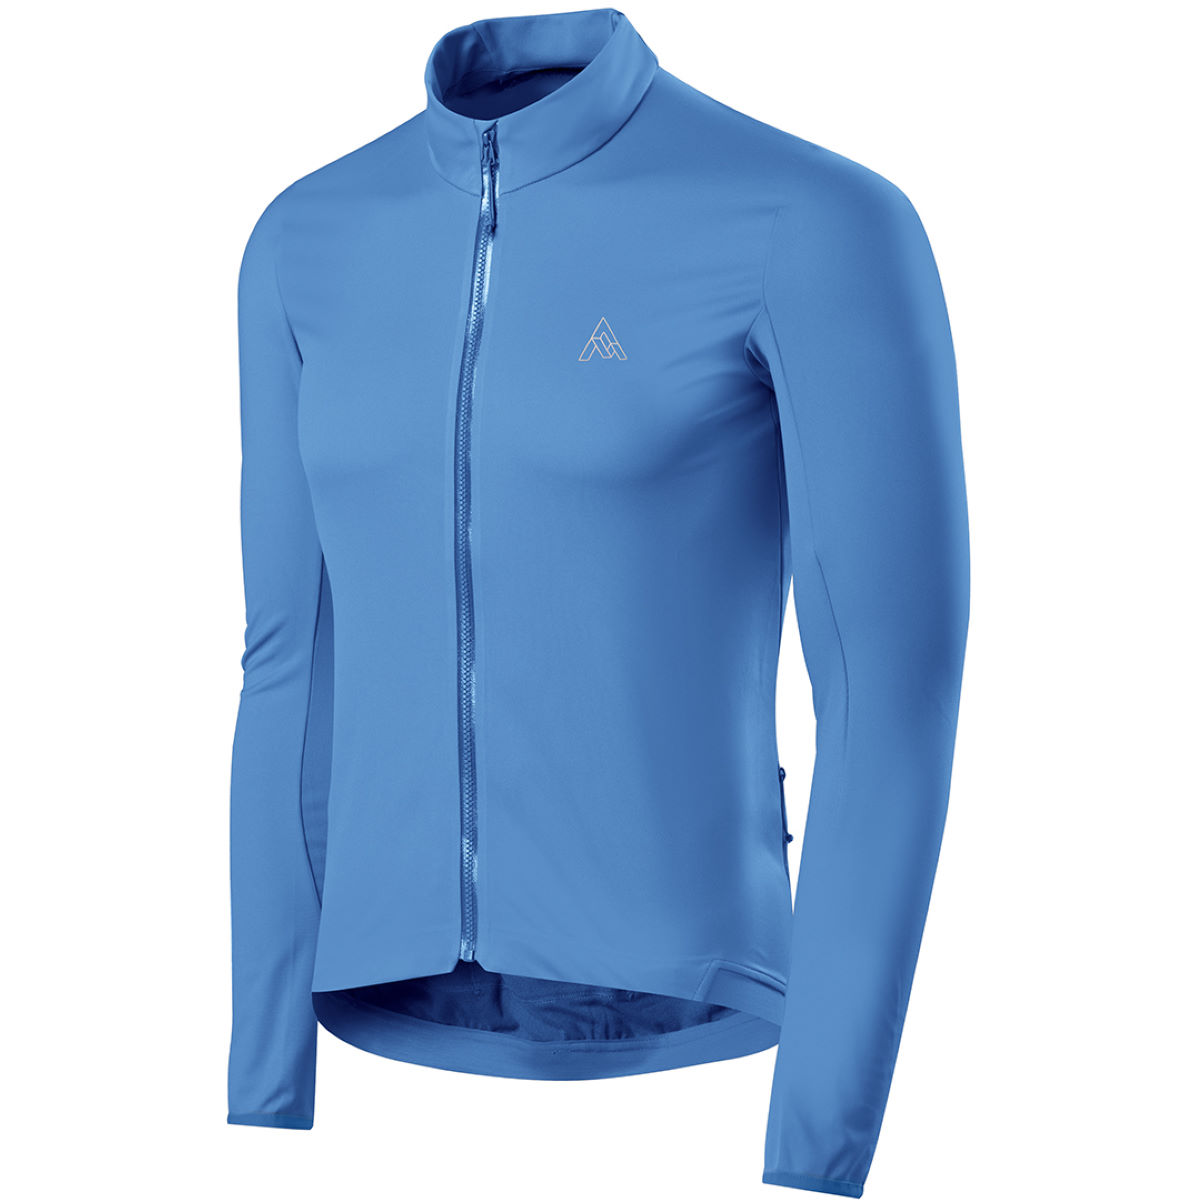 7Mesh Synergy Windstopper Long Sleeve Jersey - Maillots